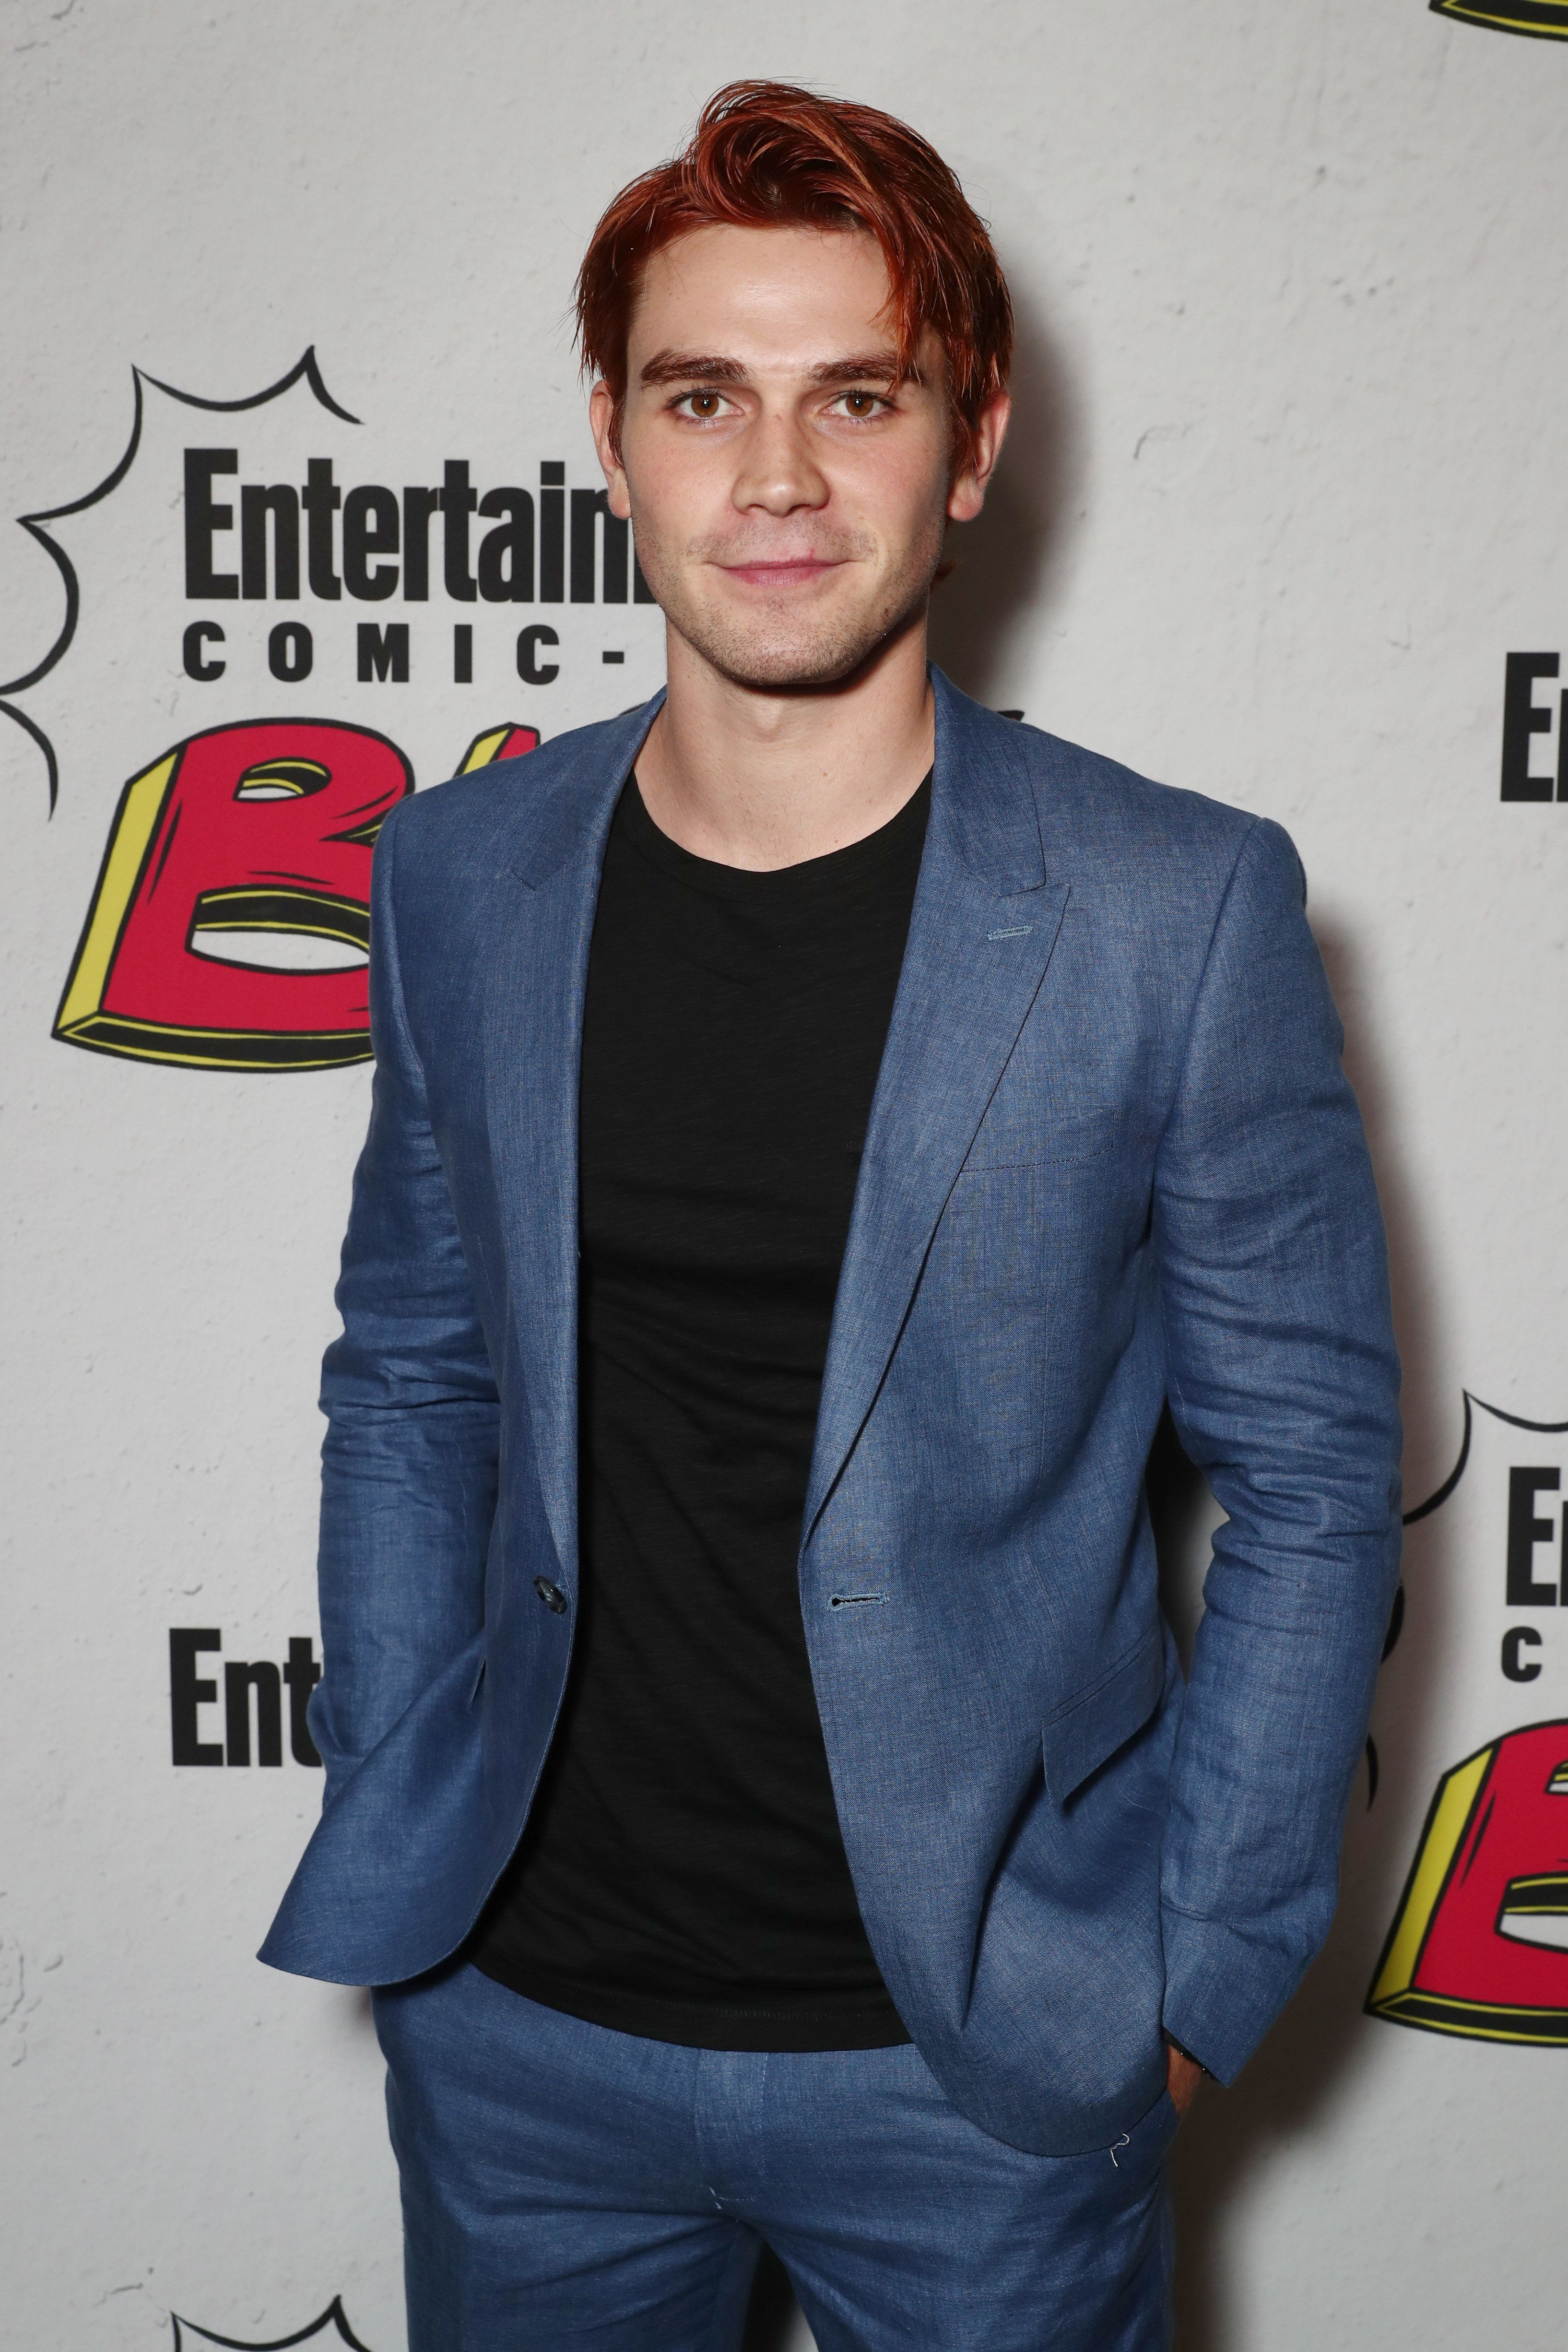 'Riverdale' Star Crashes Car After Allegedly Falling Asleep At The